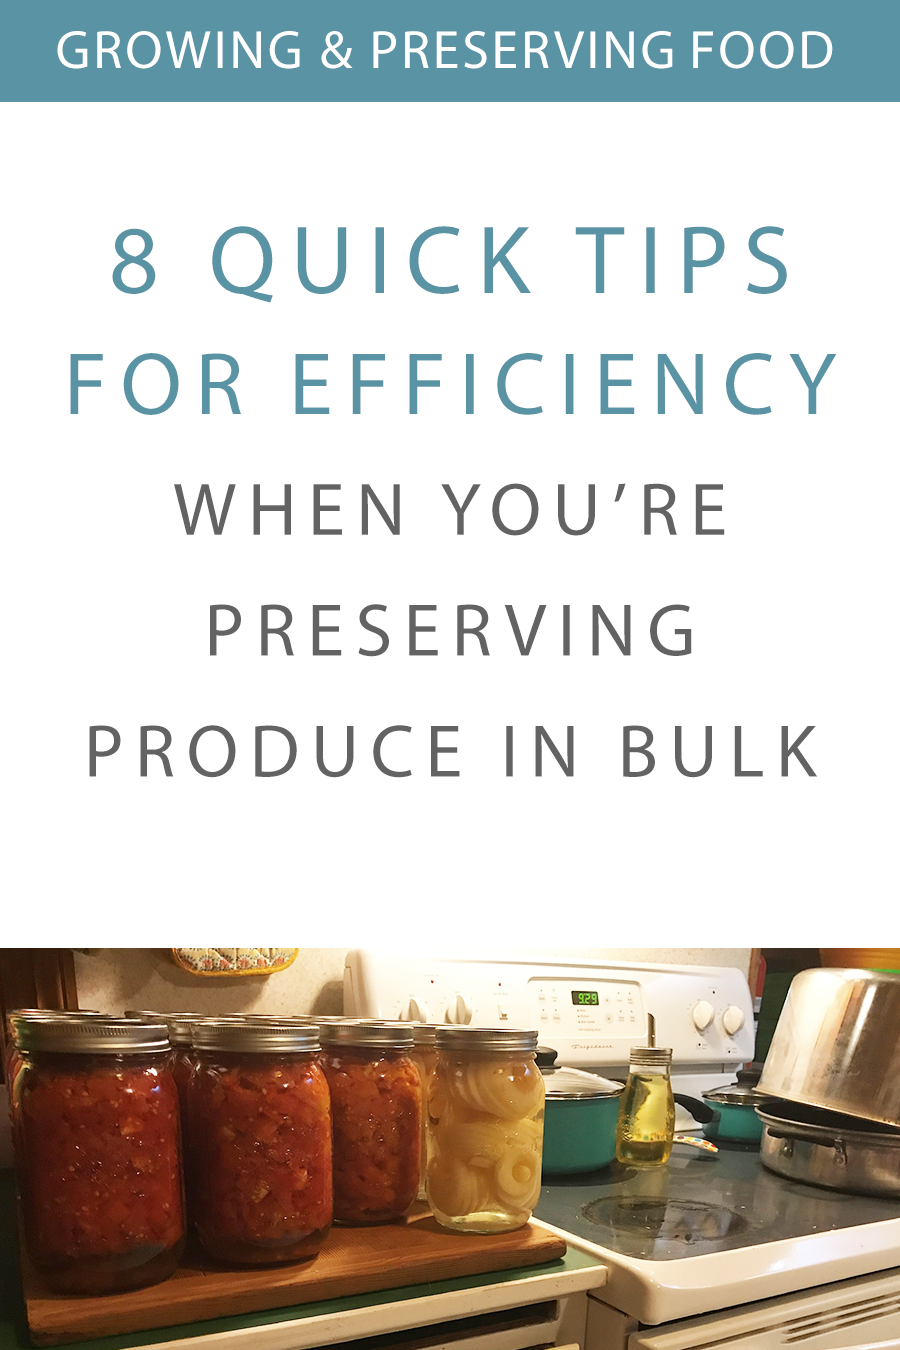 8 Quick Ways to Preserve Produce More Efficiently and Cost-Effectively